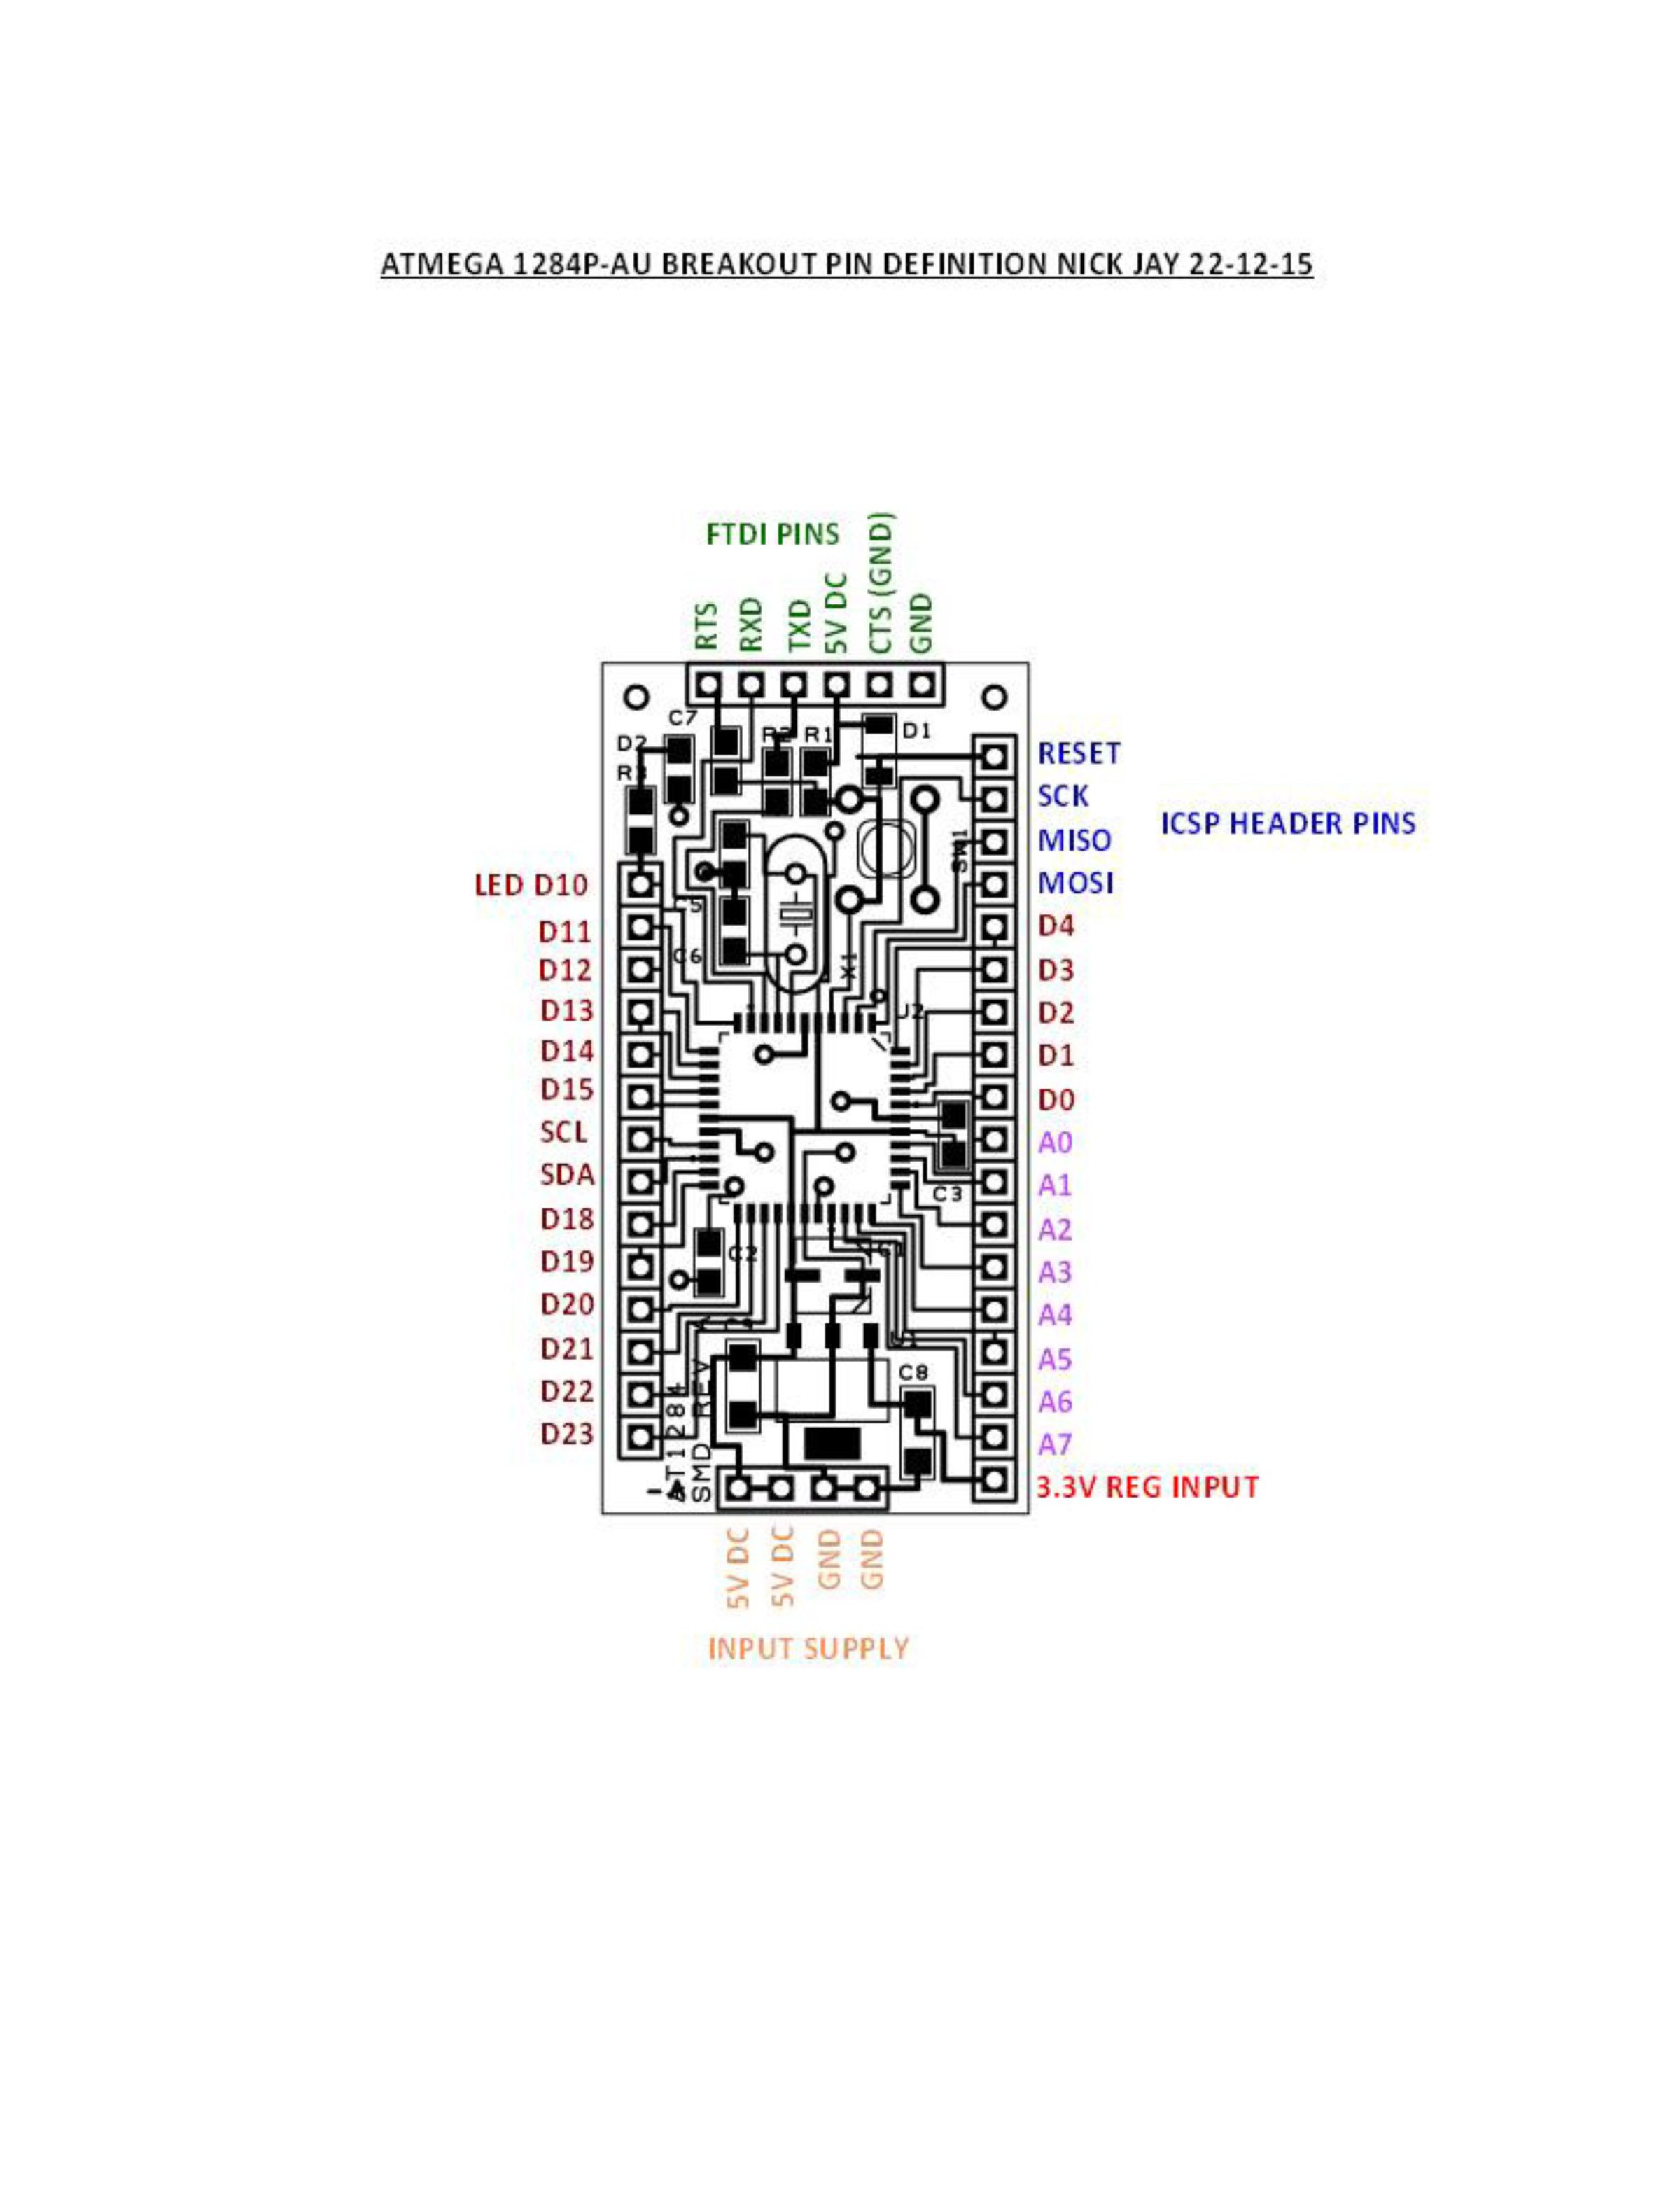 Mini Surface mount ATmega1284P-AU Breakout Low amp from